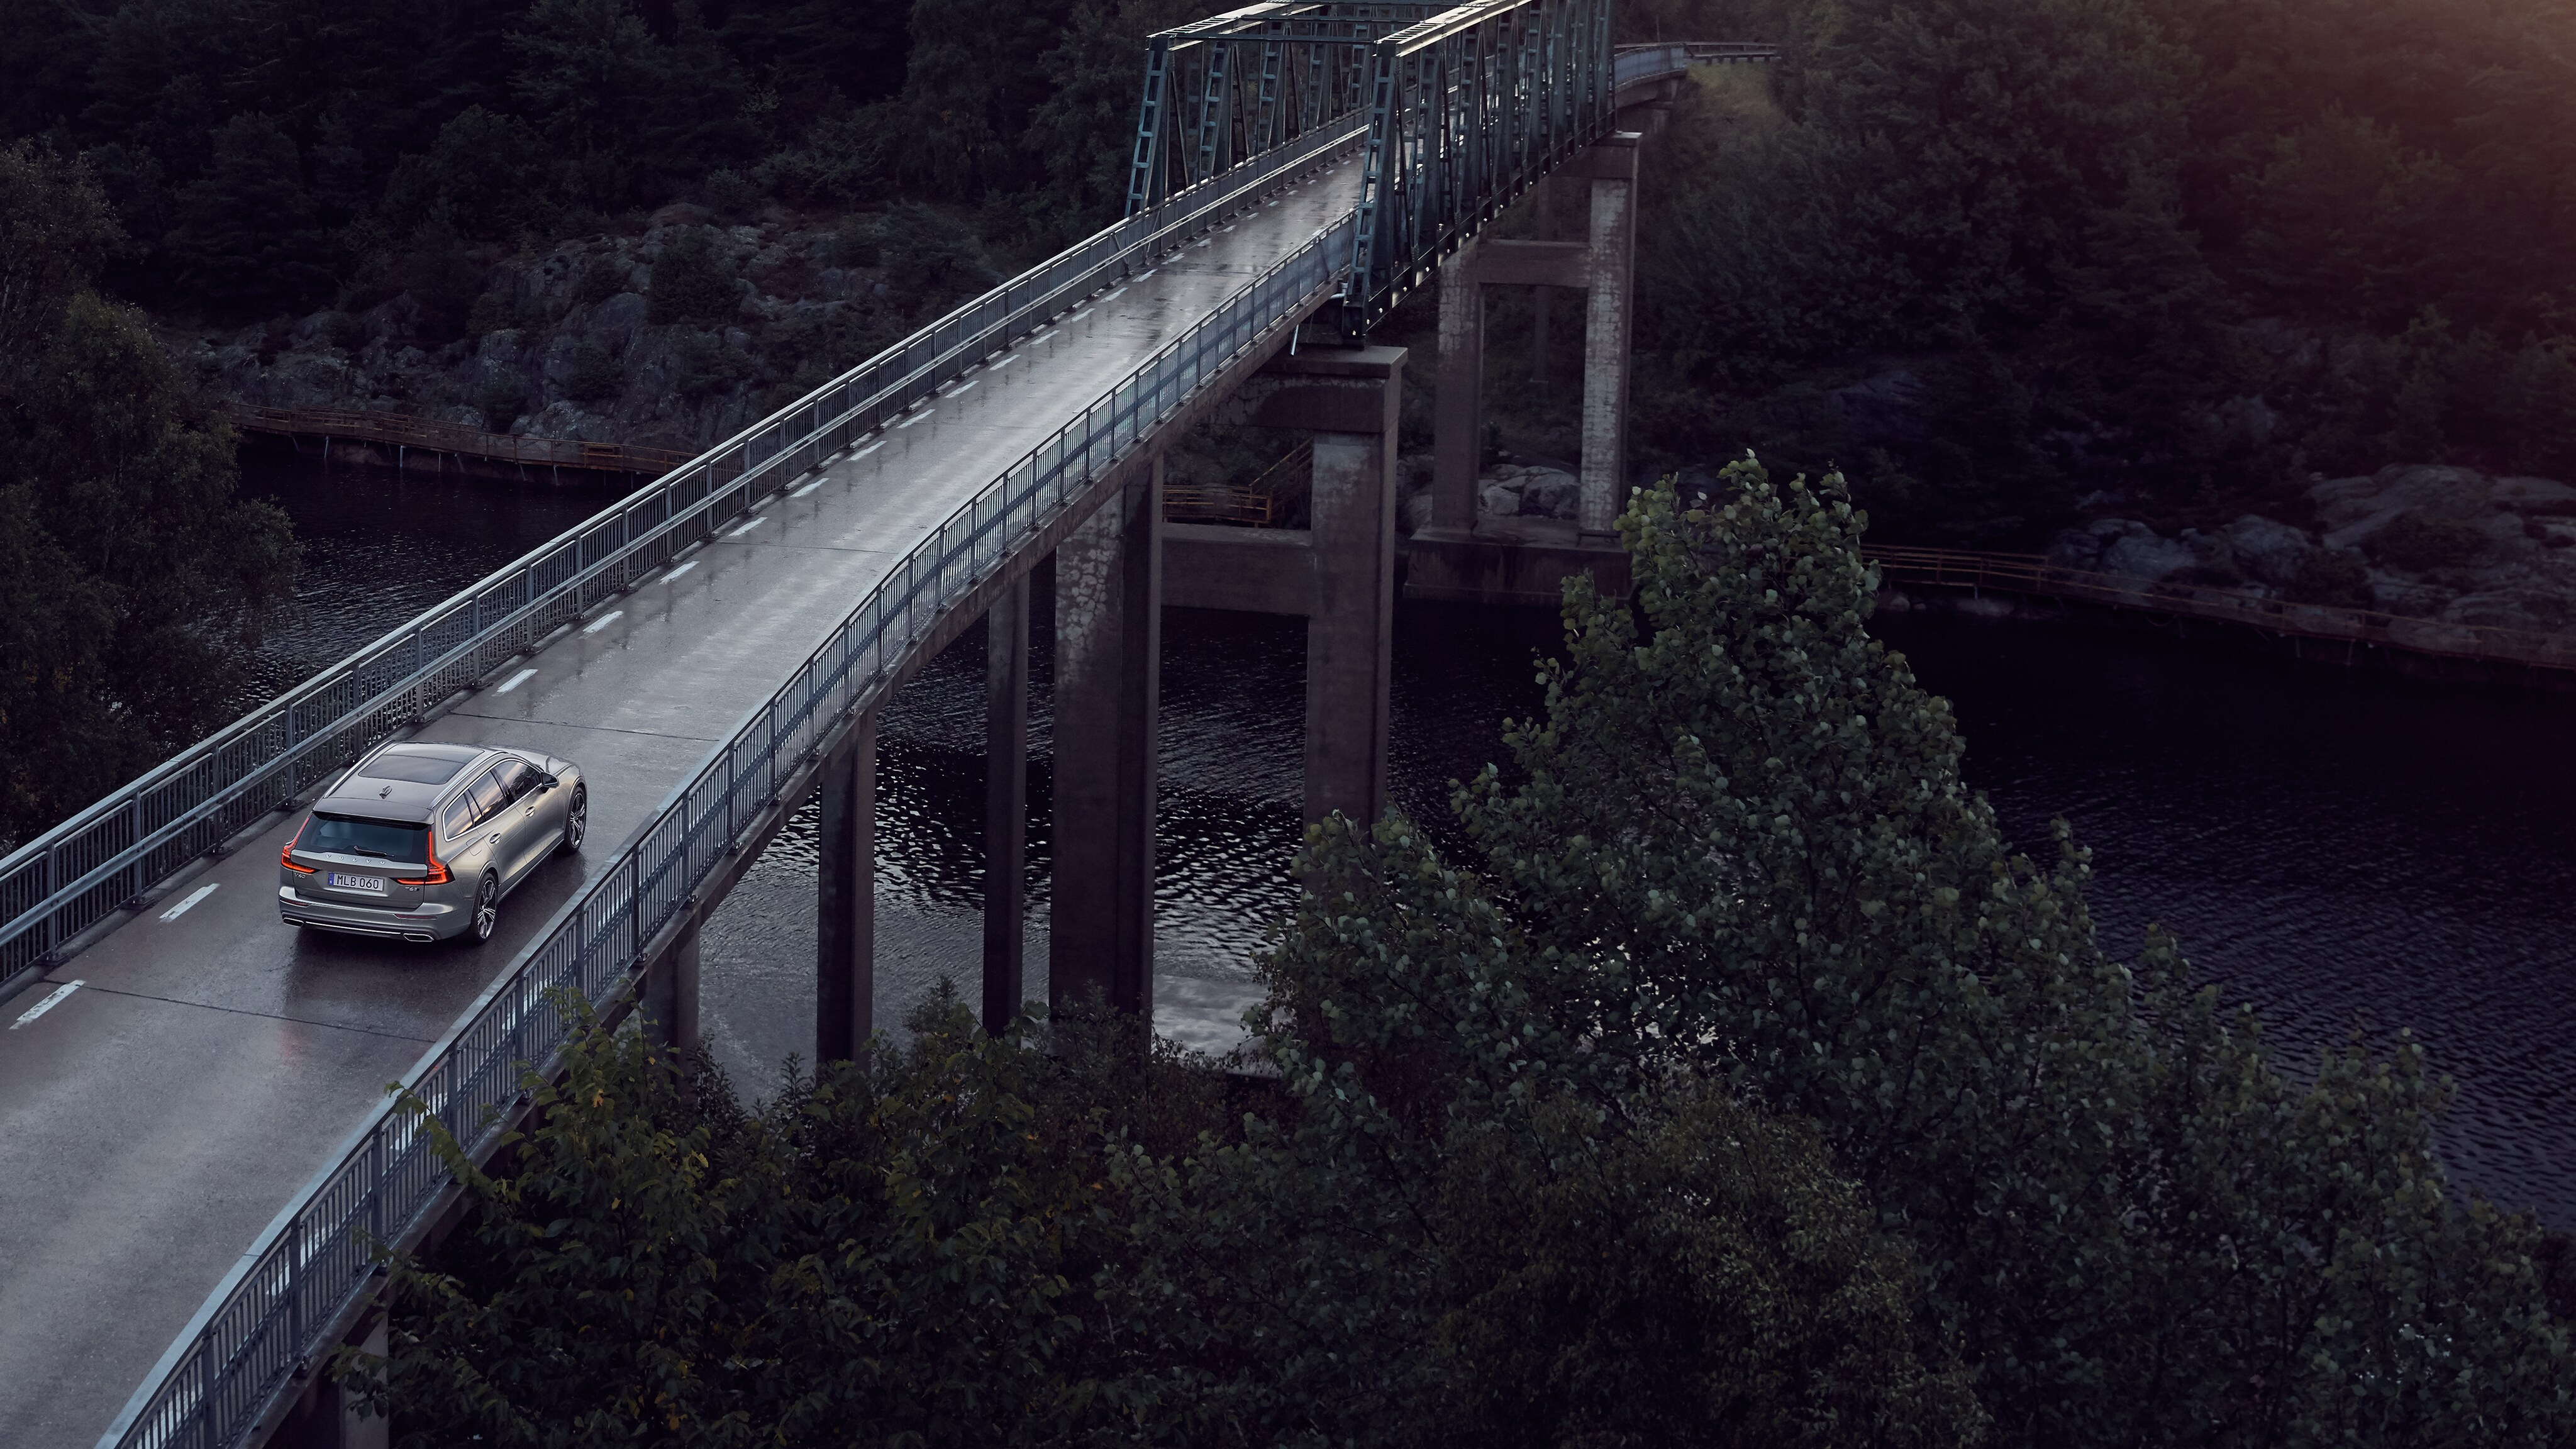 Volvo V60 driving over a bridge